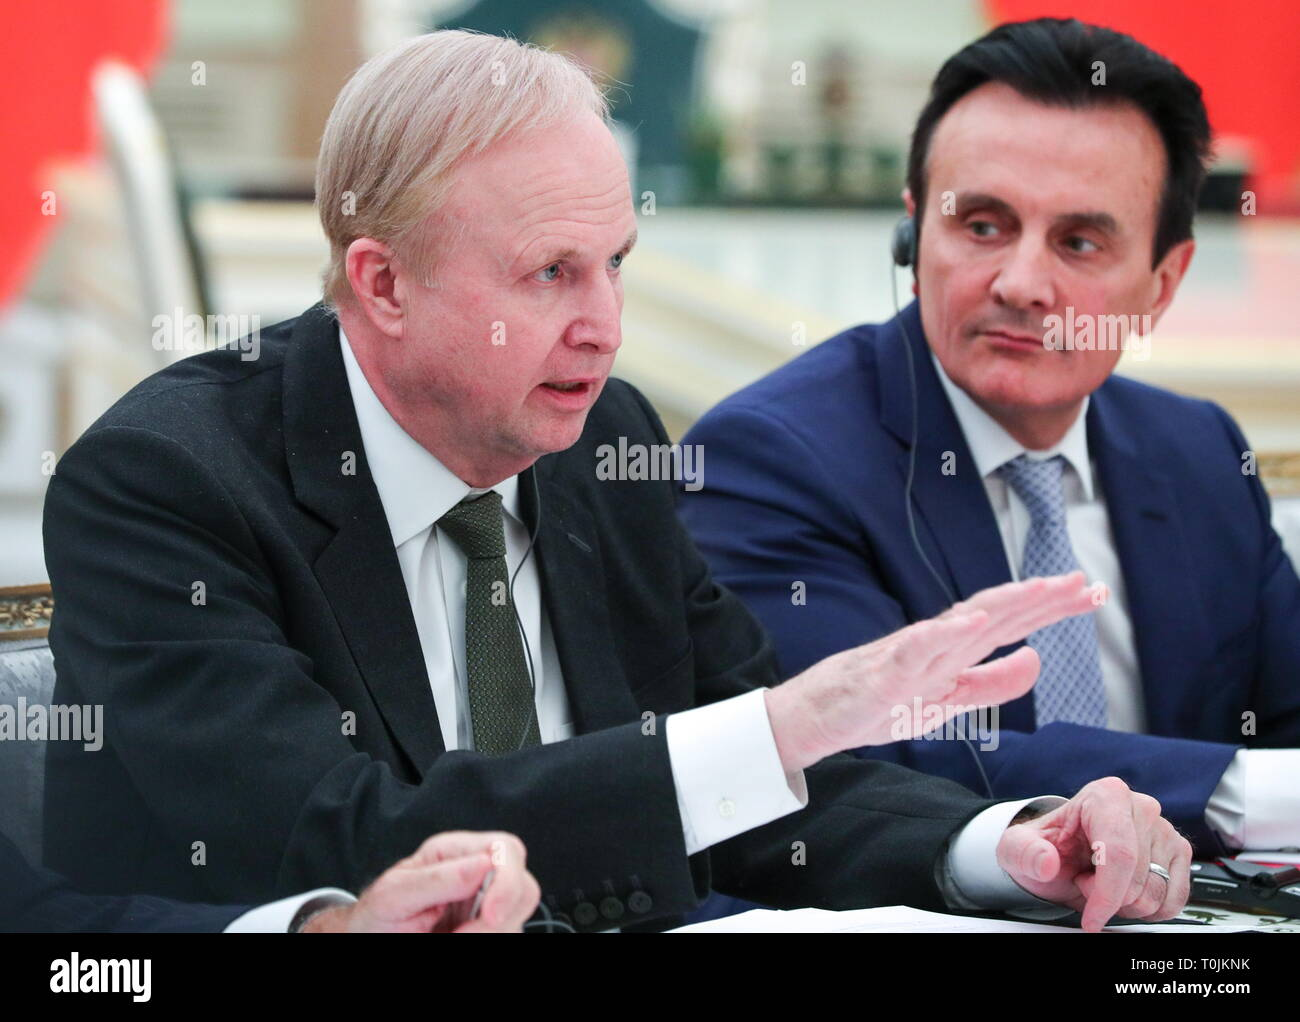 Moscow, Russia. 20th Mar, 2019. MOSCOW, RUSSIA - MARCH 20, 2019: BP Chief Executive Robert Dudley (L) and AstraZeneca CEO Pascal Soriot during a meeting between other British businessmen and Russia's President Vladimir Putin at the Moscow Kremlin. Mikhail Tereshchenko/TASS Credit: ITAR-TASS News Agency/Alamy Live News - Stock Image